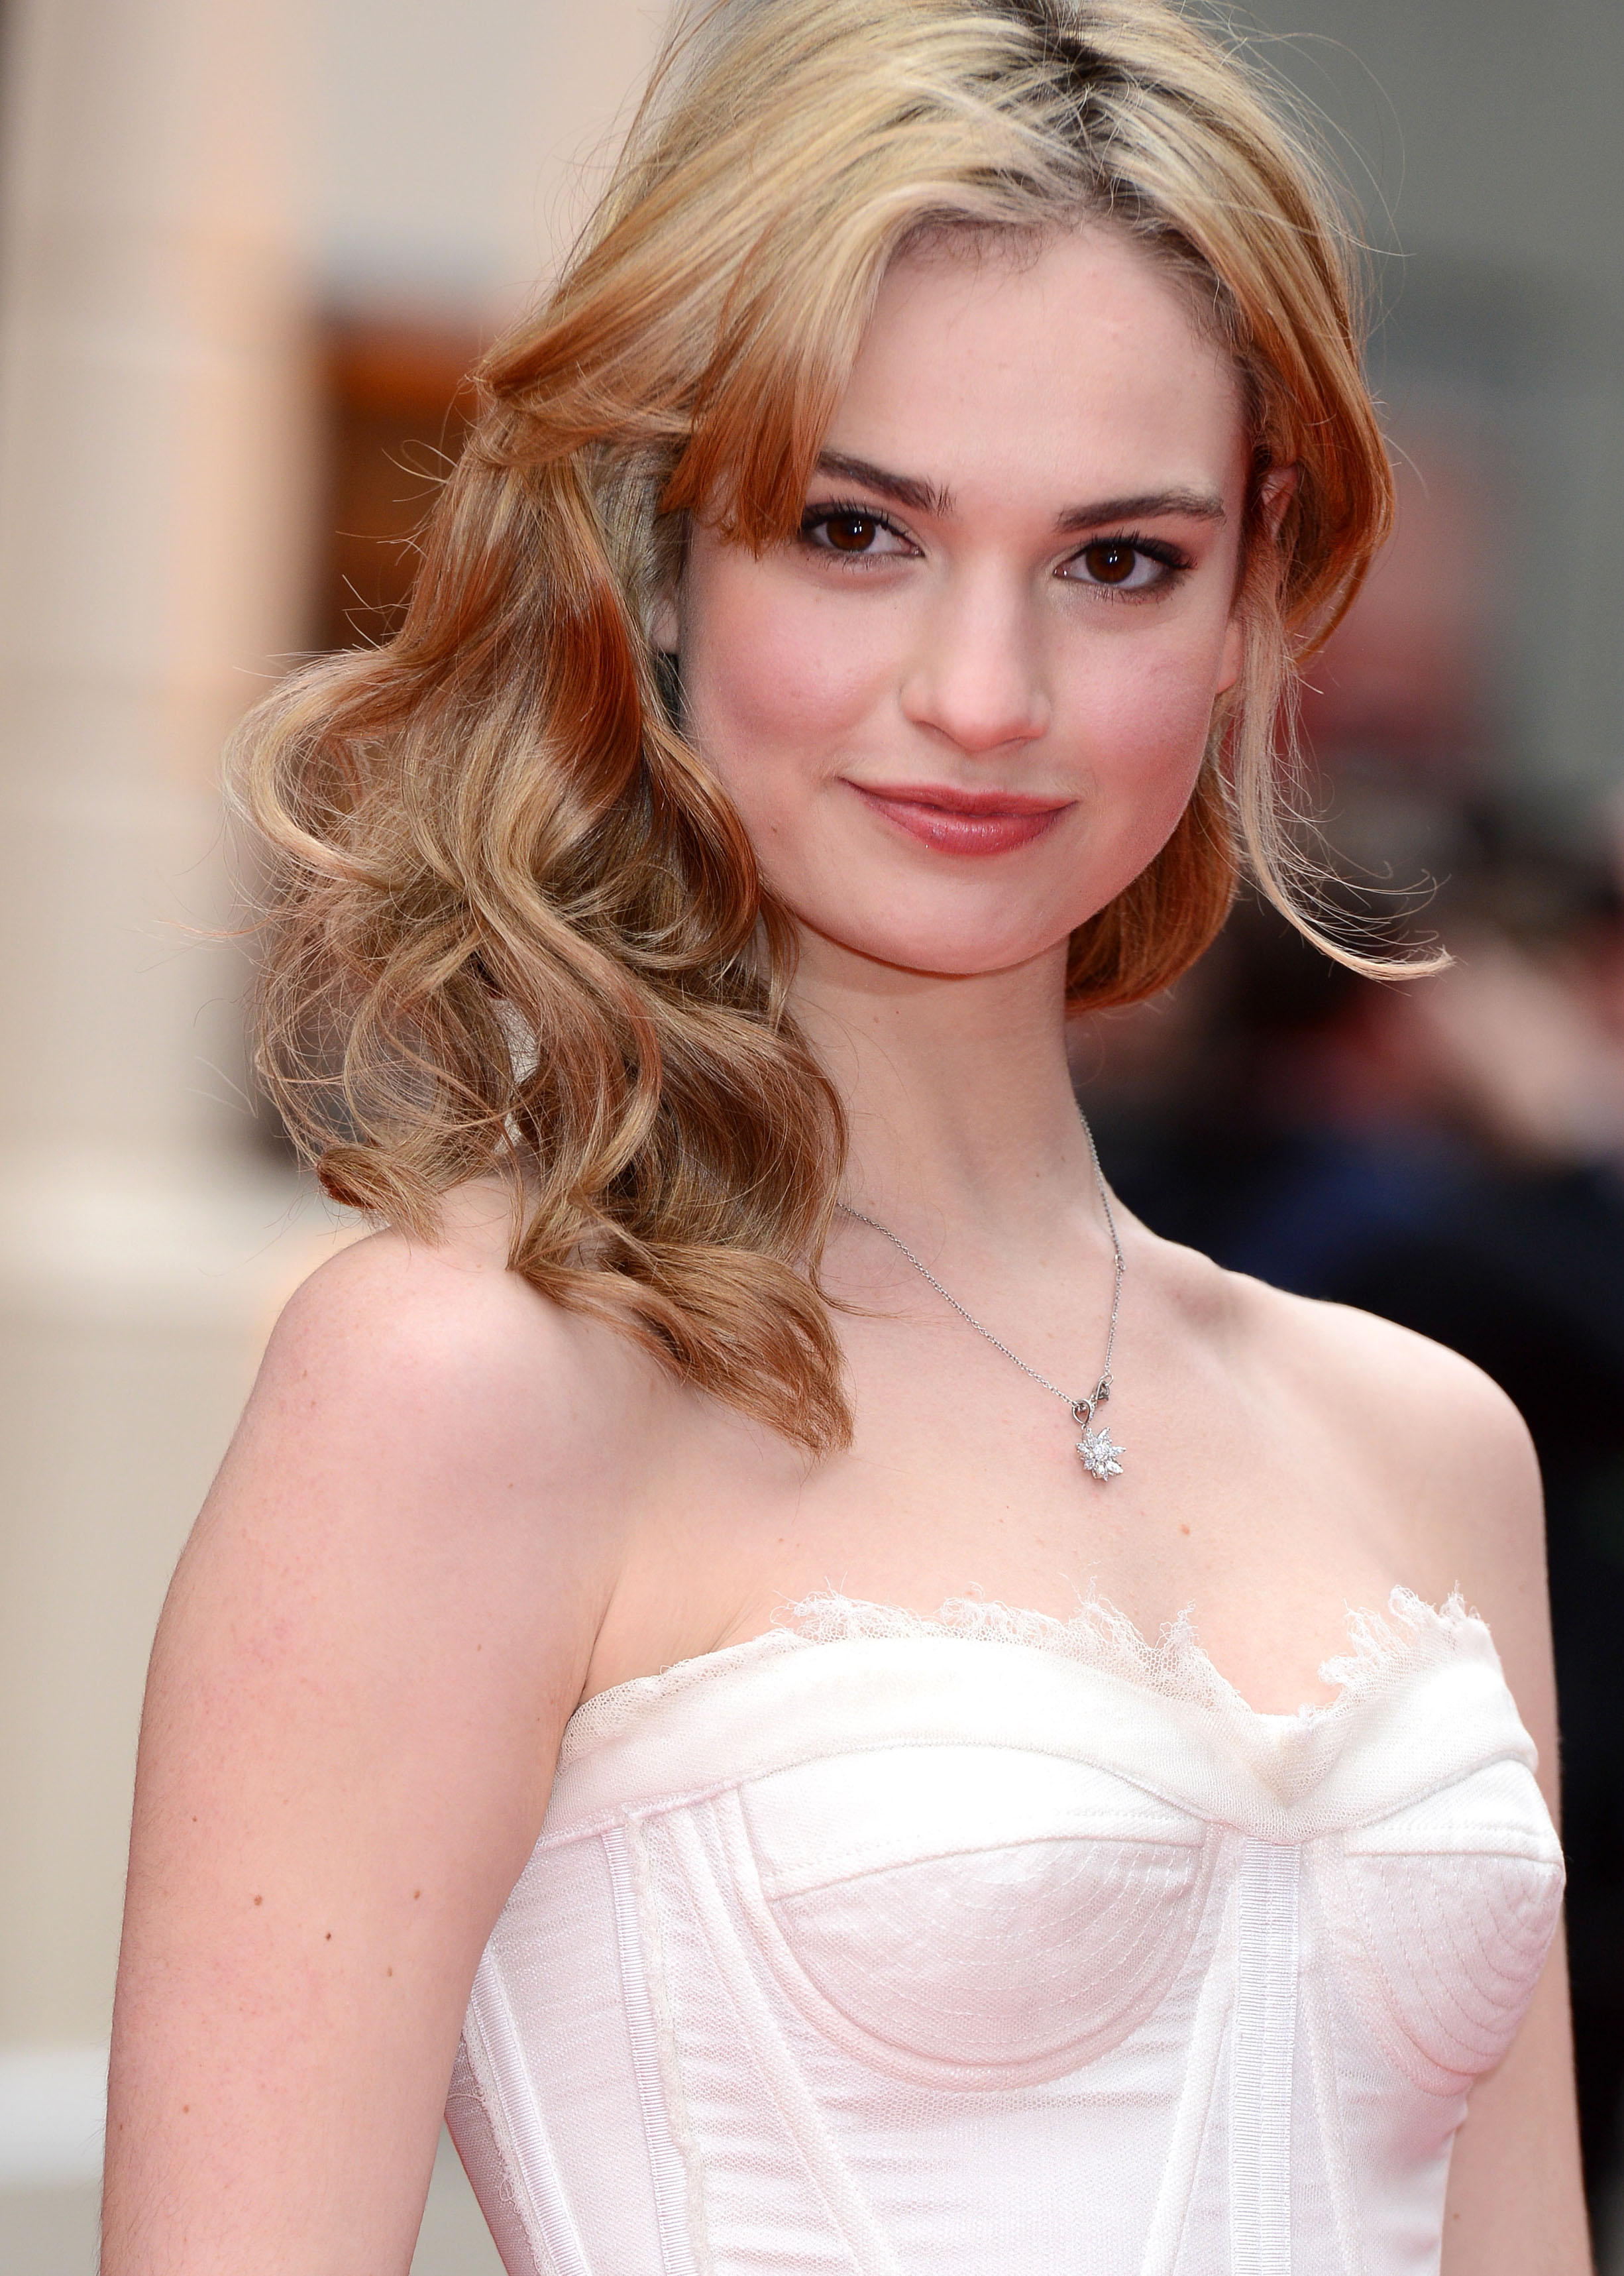 Lily james tits